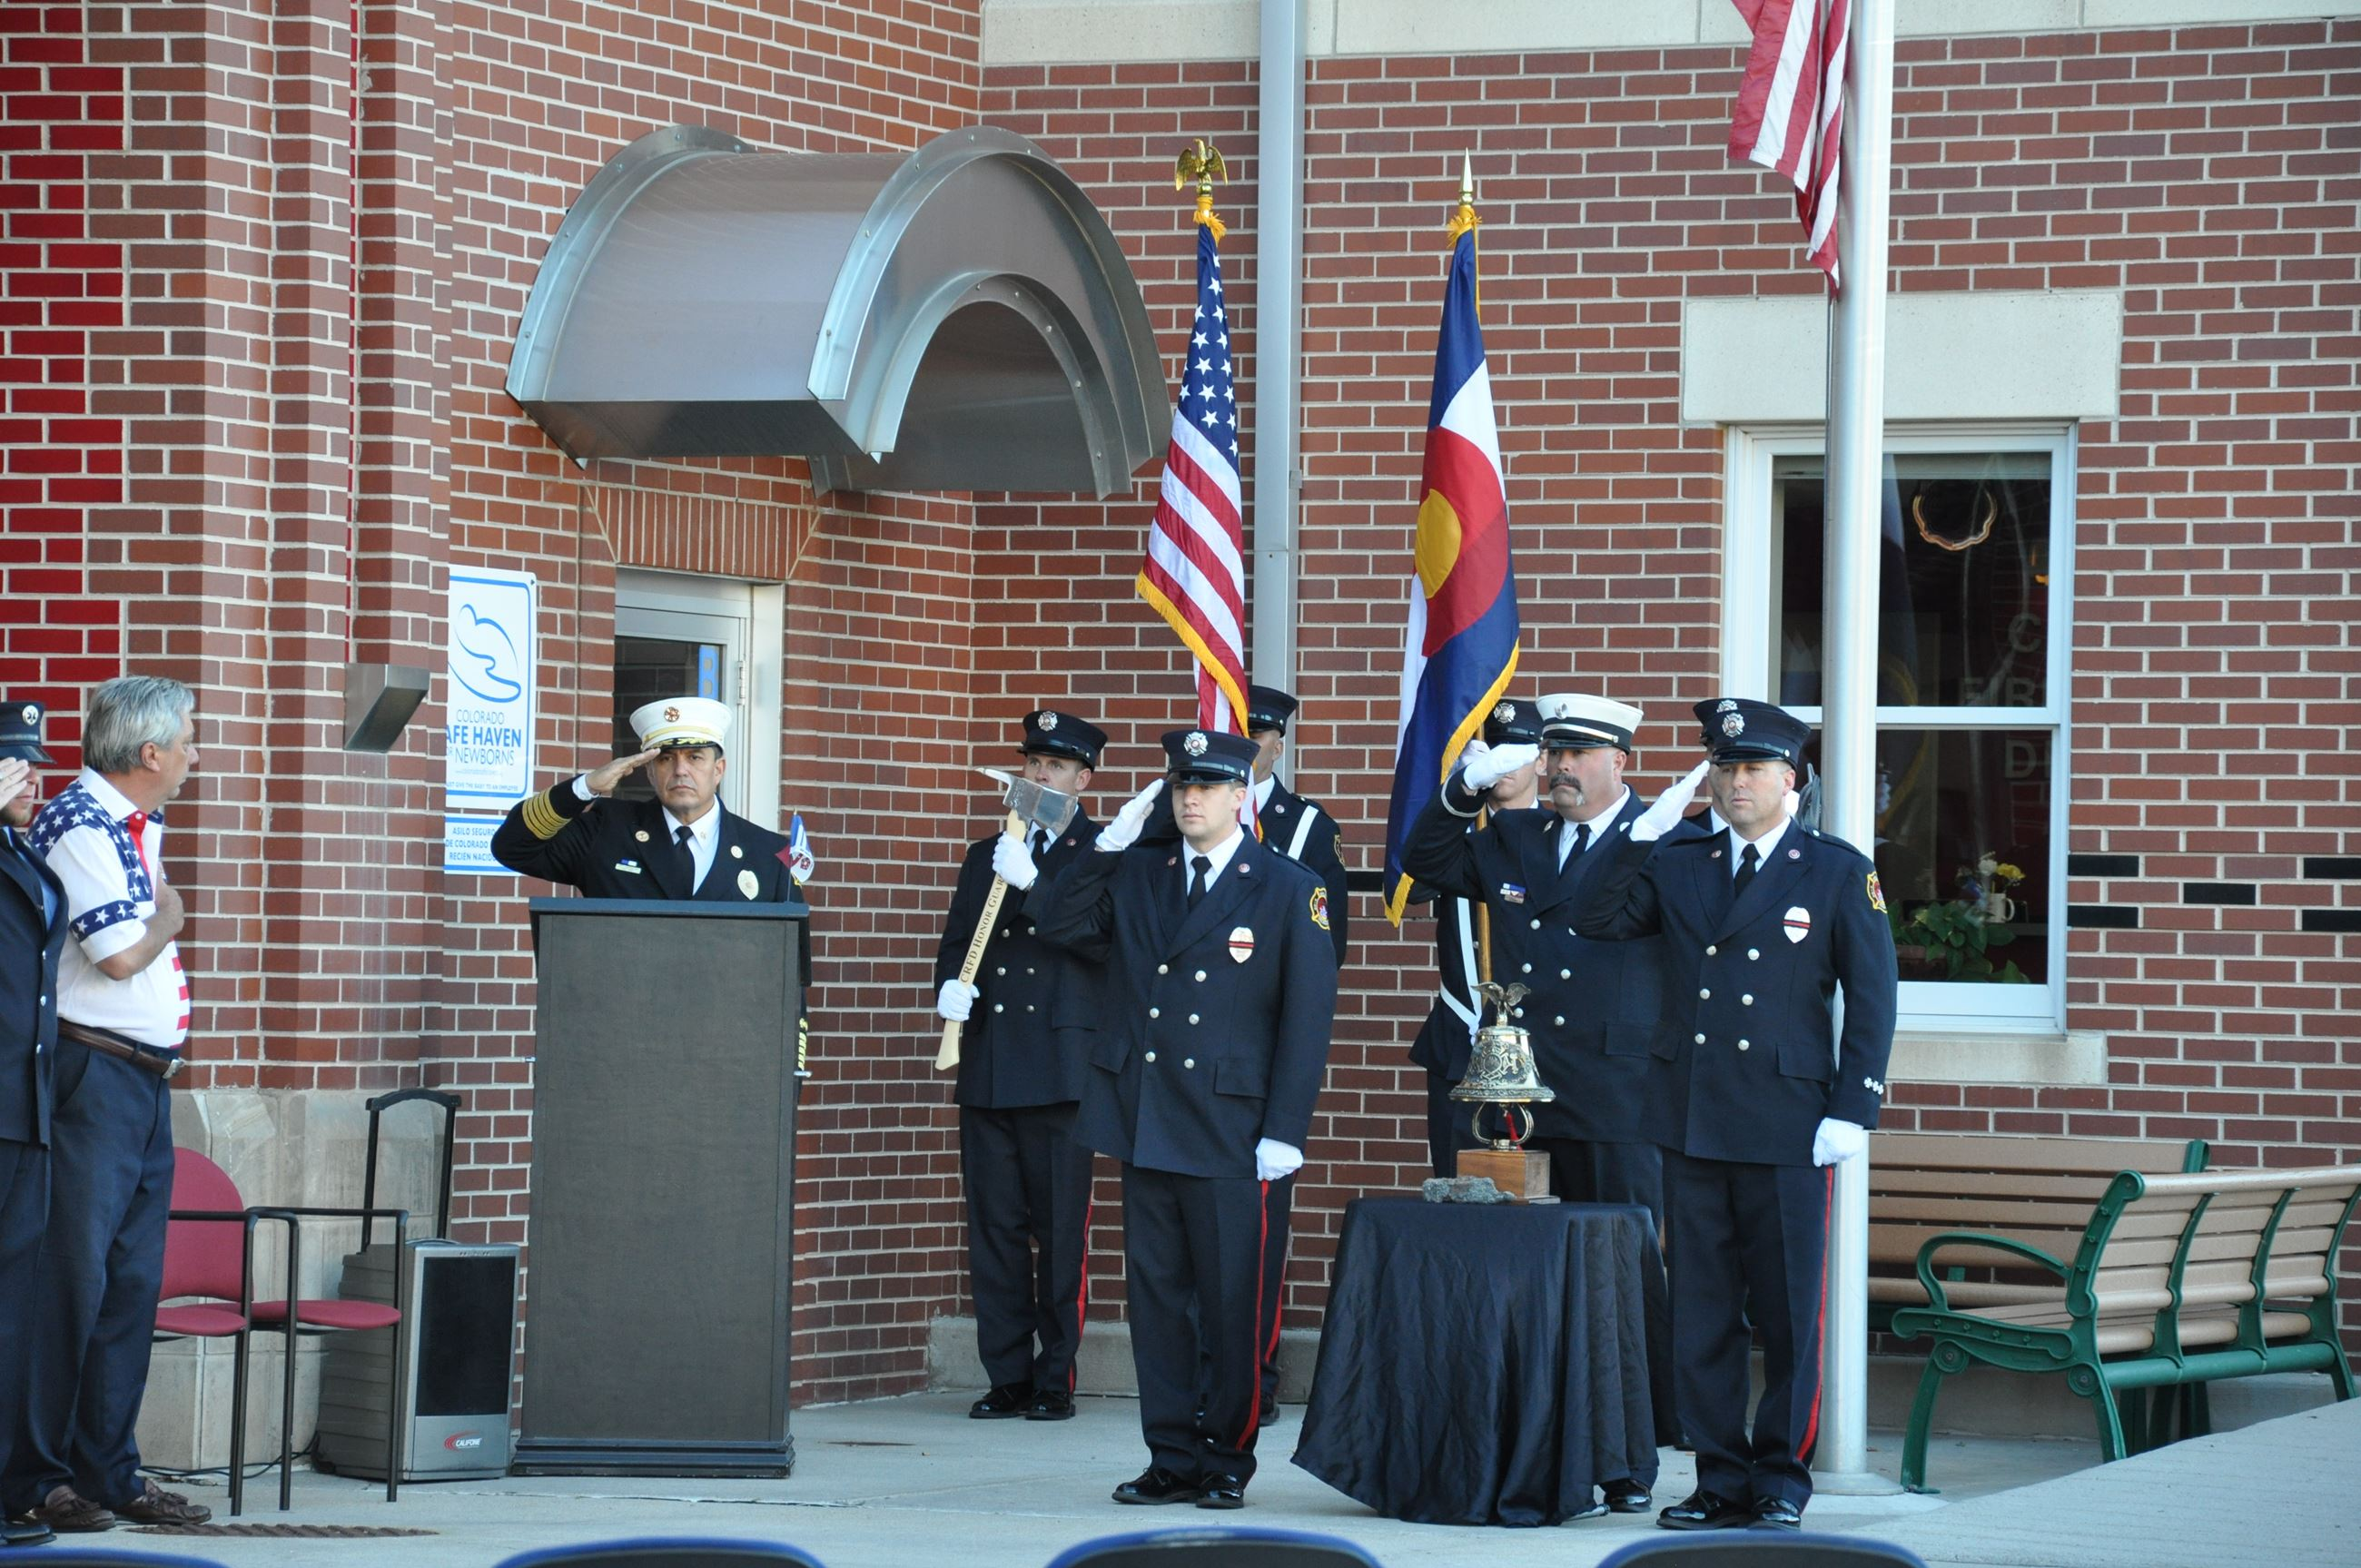 Honor guard and other fire department personnel saluting